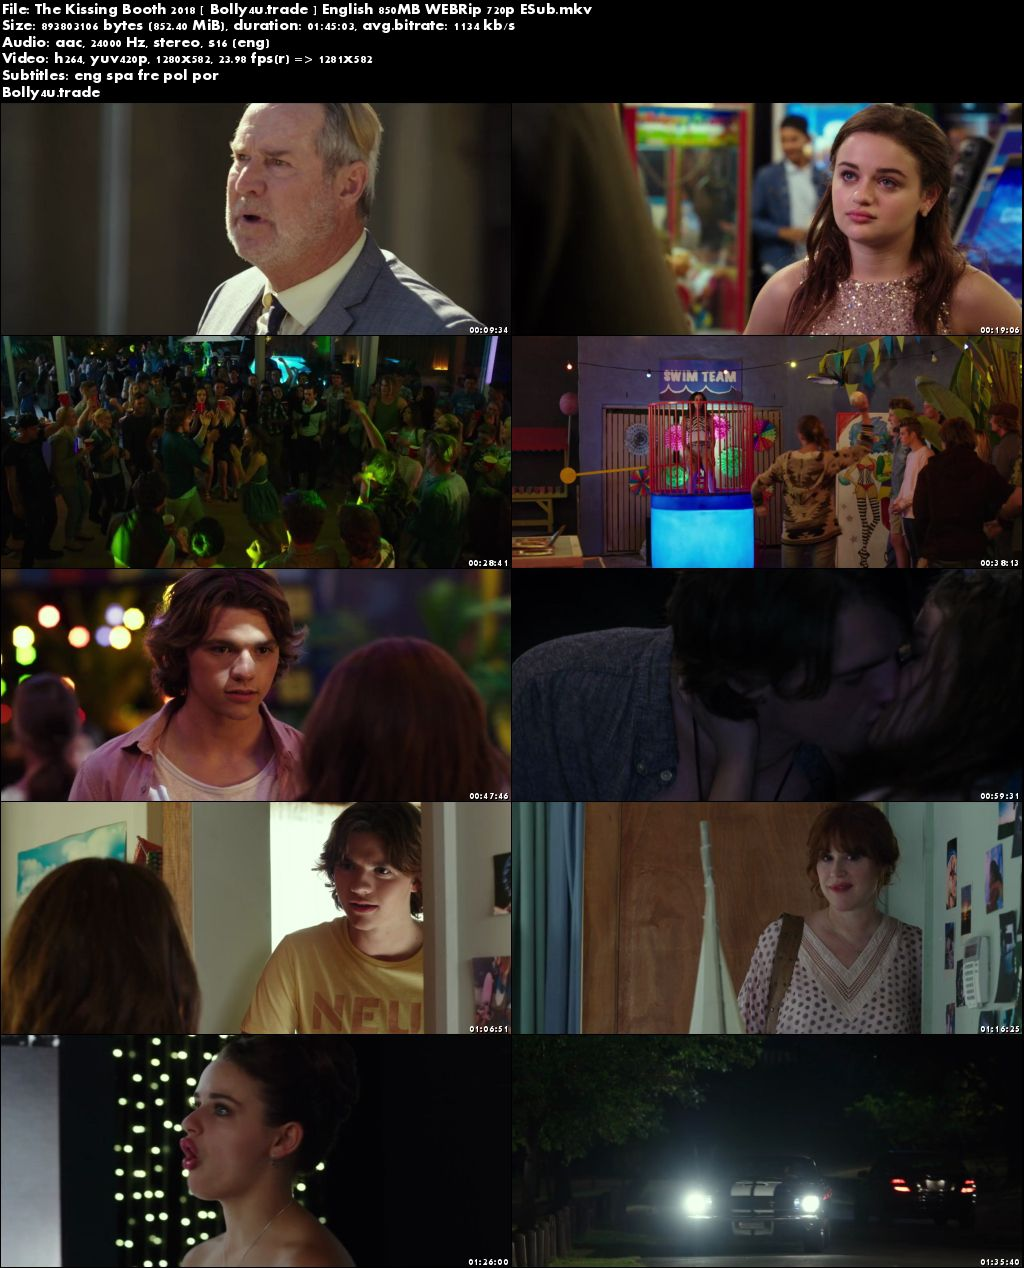 The Kissing Booth 2018►Two Thousand Eighteen►Two Thousand Eighteen WEB-DL 850Mb English (720p►1280 x 720 pixels) ESub Download